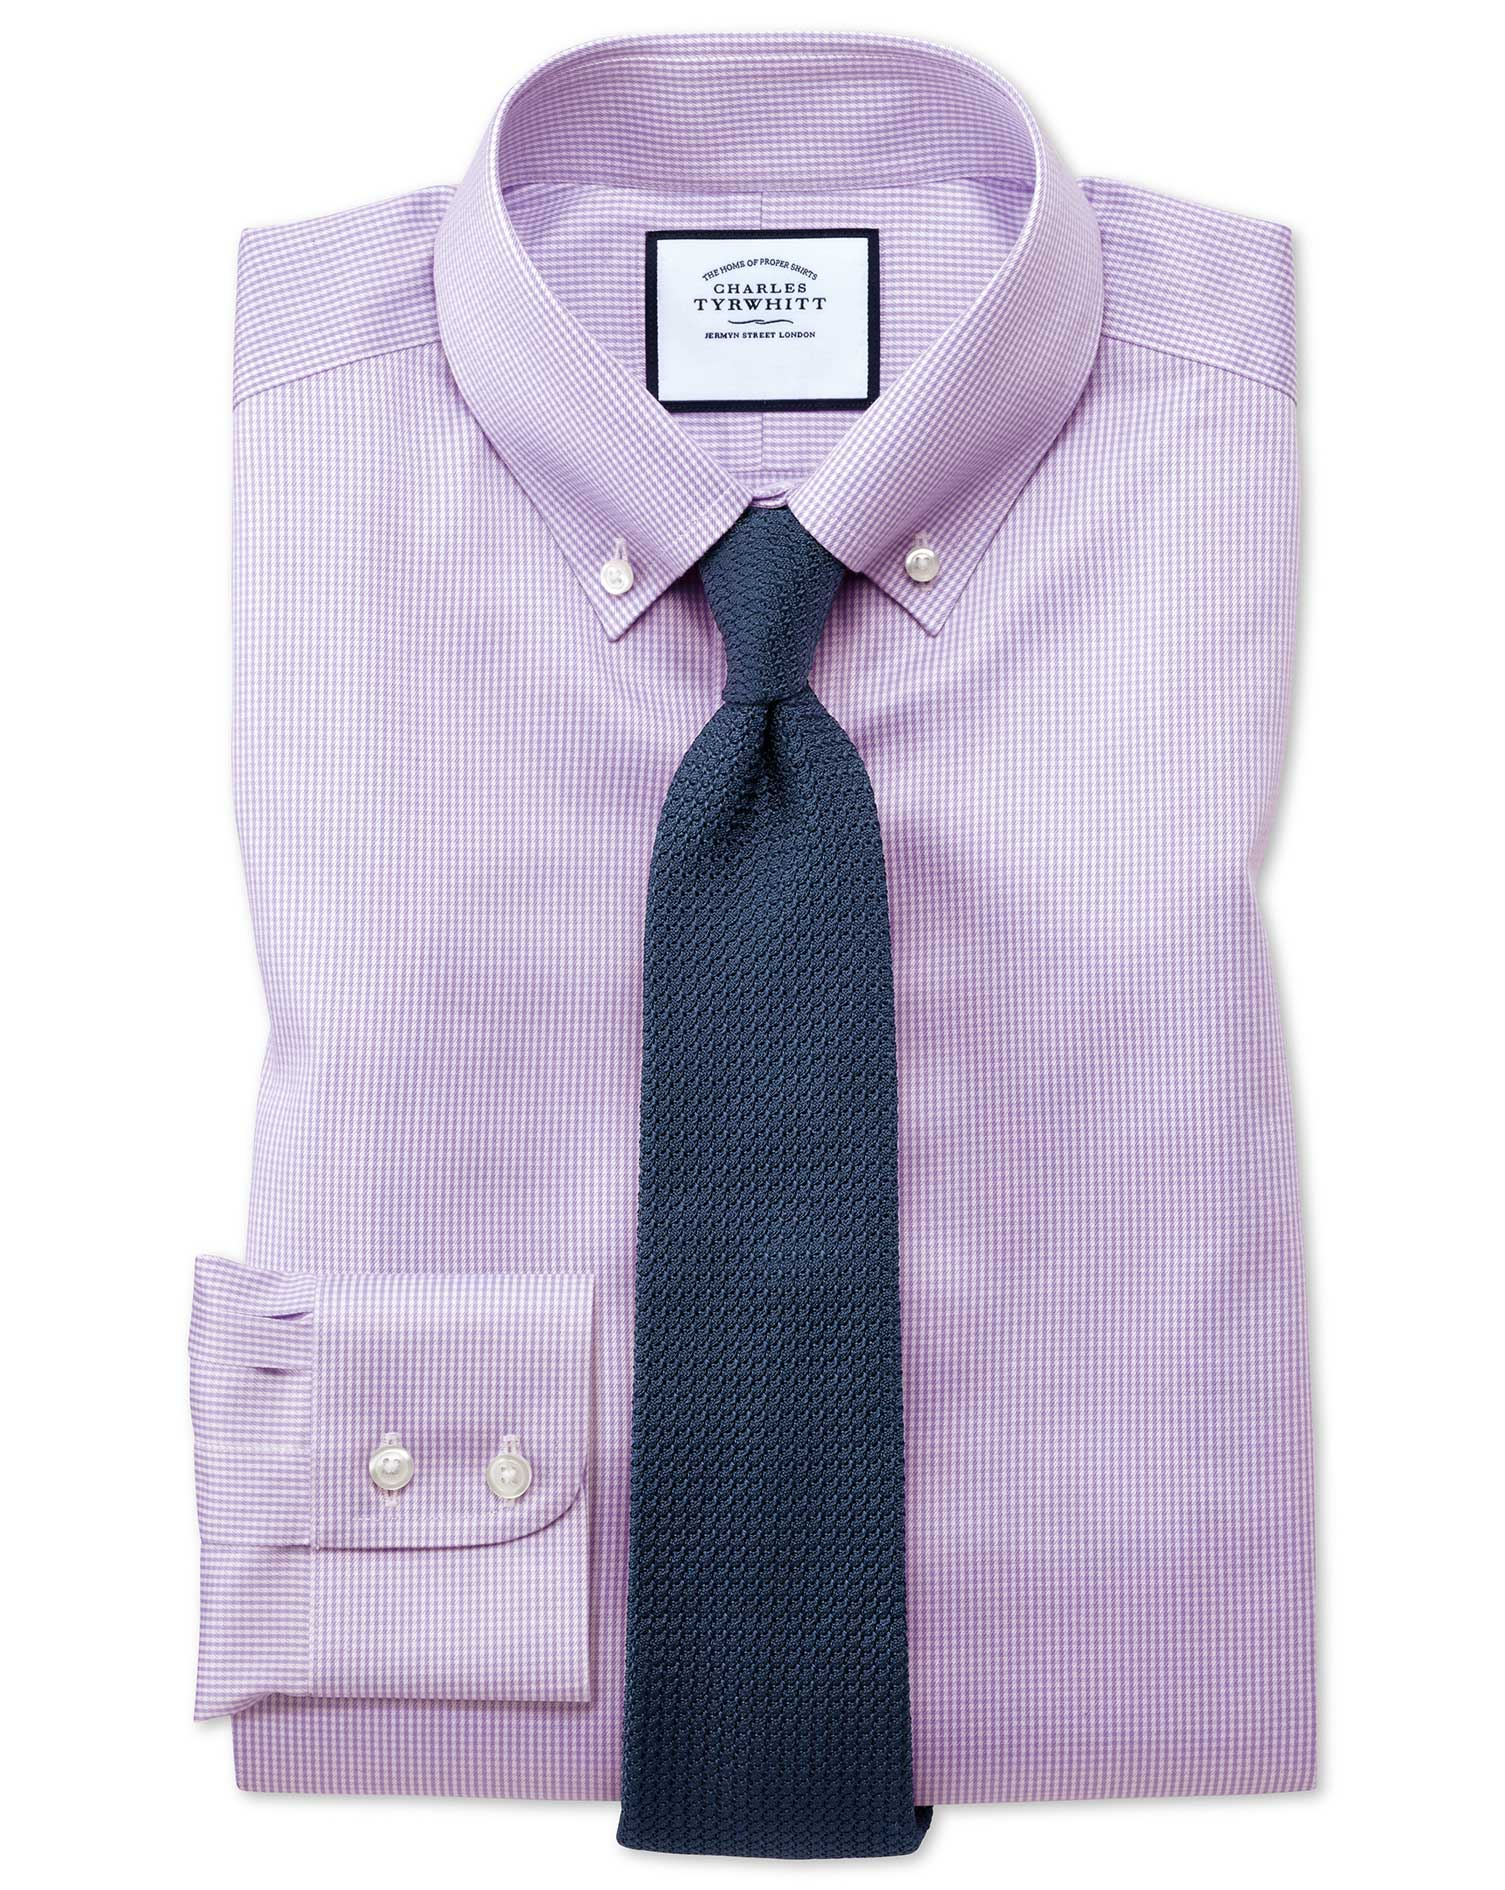 Classic Fit Button-Down Non-Iron Twill Puppytooth Lilac Cotton Formal Shirt Single Cuff Size 17/36 b